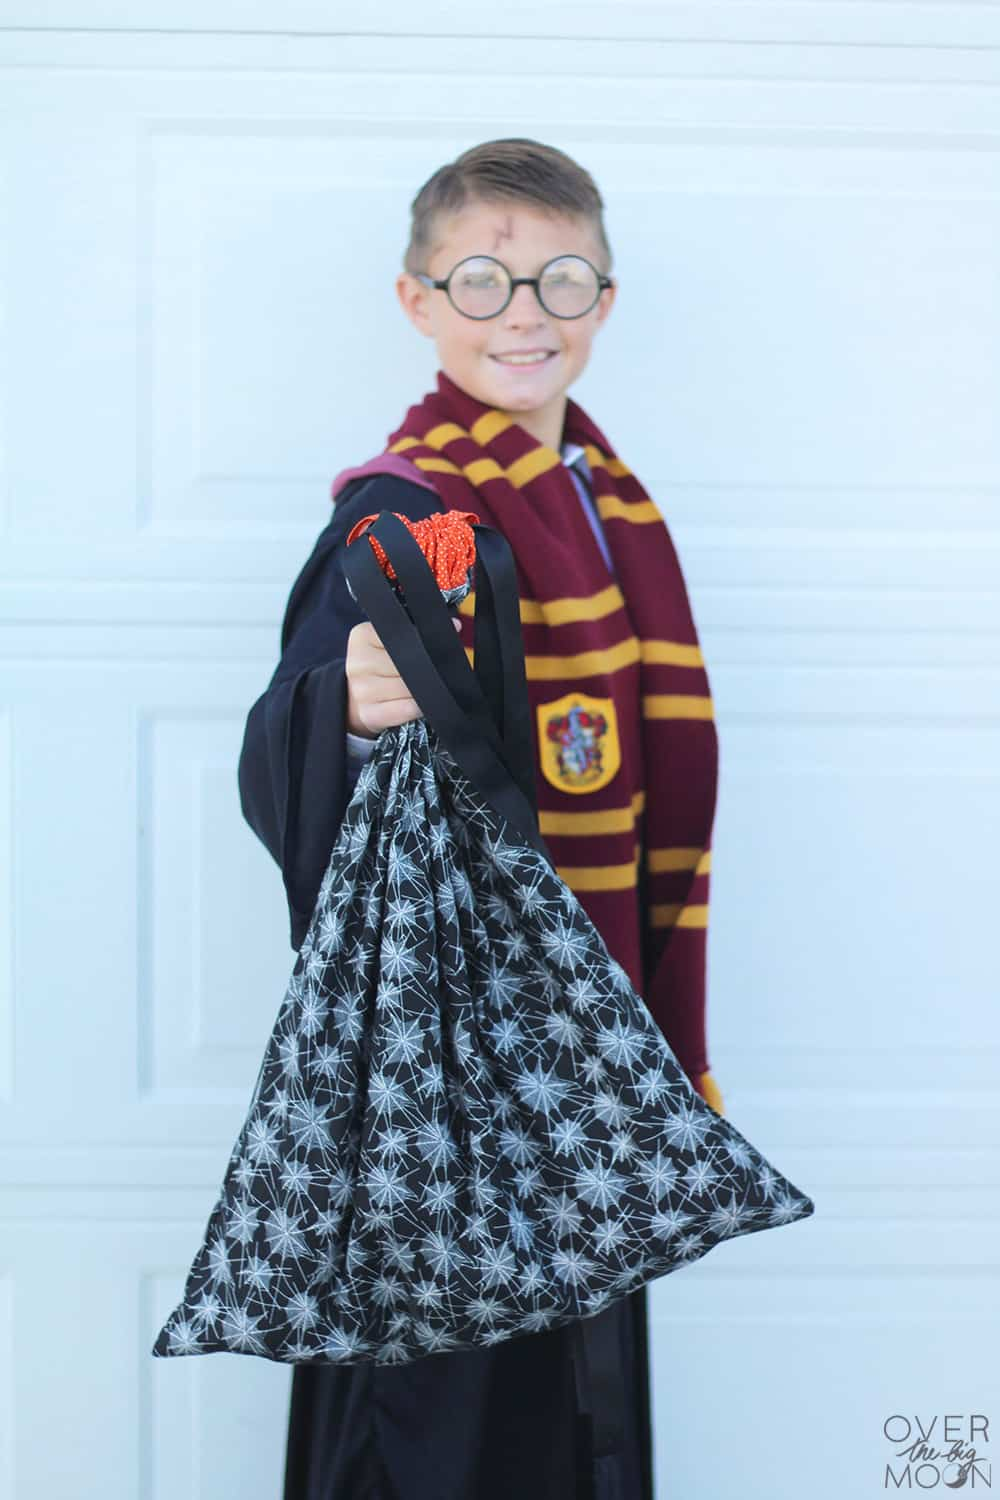 The perfect trick or treat bags for kids - Pillowcase Trick or Treat Bags with a drawstring top! From www.overthebigmoon.com!